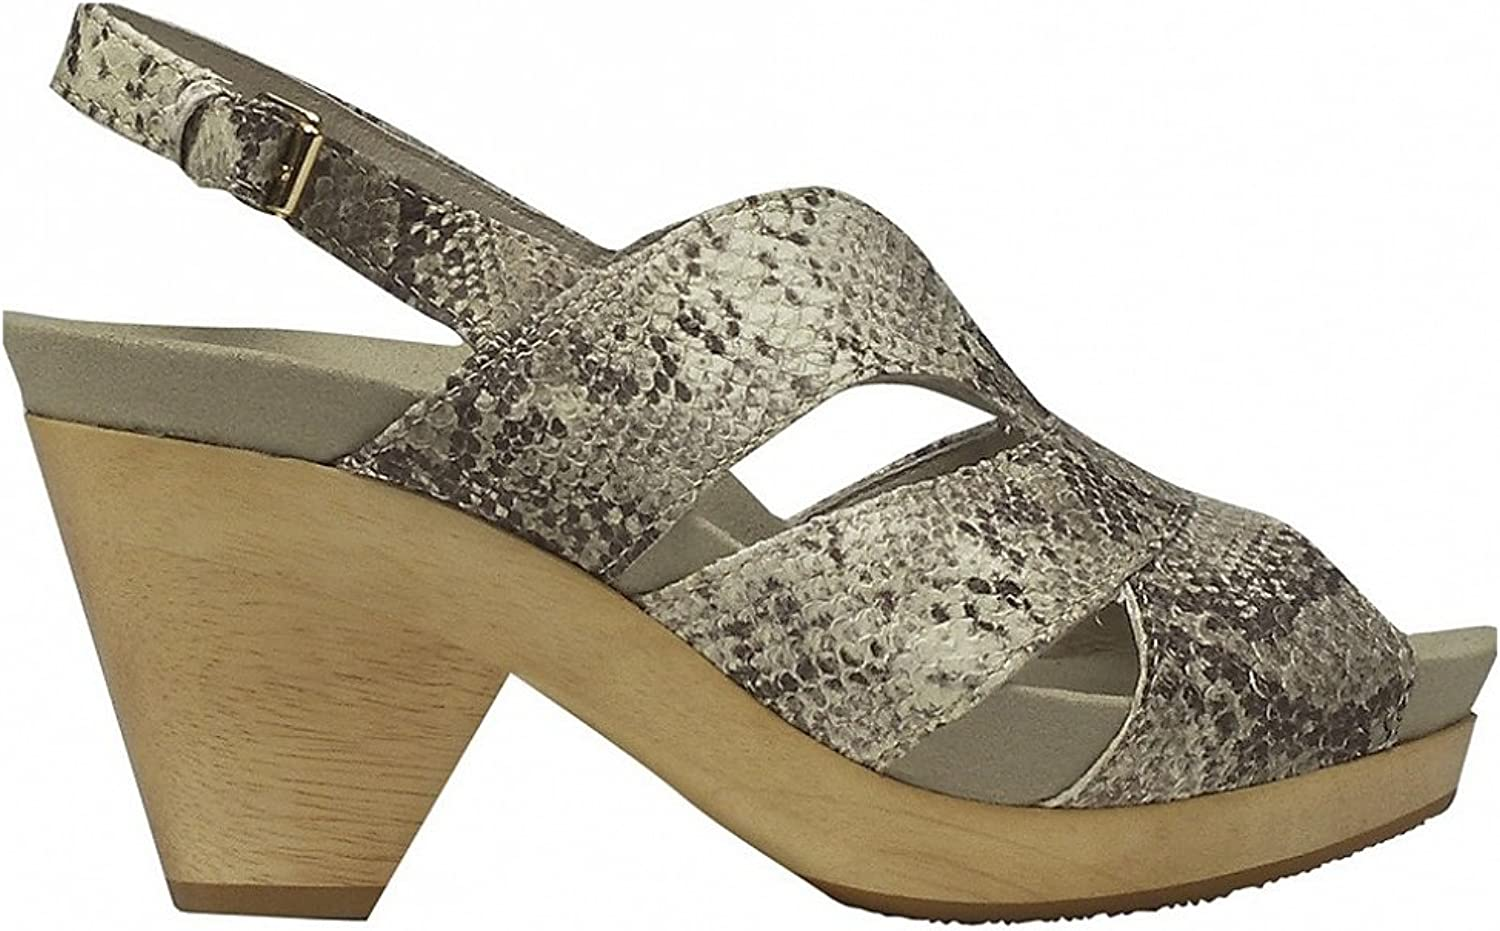 Earthies Women's Ankle Straps Sandals